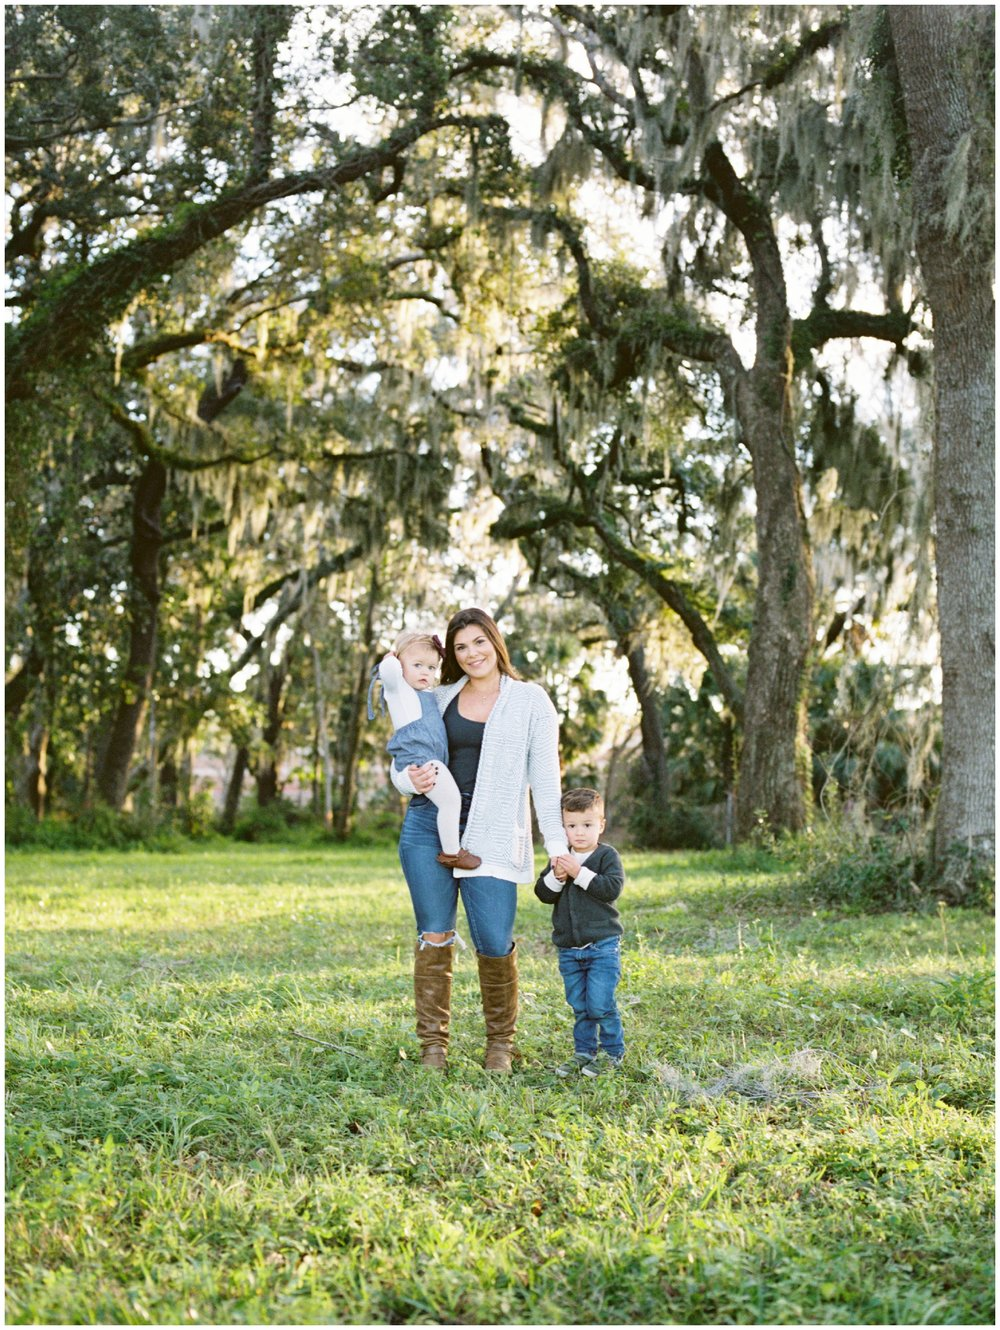 Lisa Silva Photography- Ponte Vedra Beach, St. Augustine and Jacksonville, Florida Fine Art Film Destination Wedding Photography- Family Lifestyle Session in St. Augustine_0010.jpg